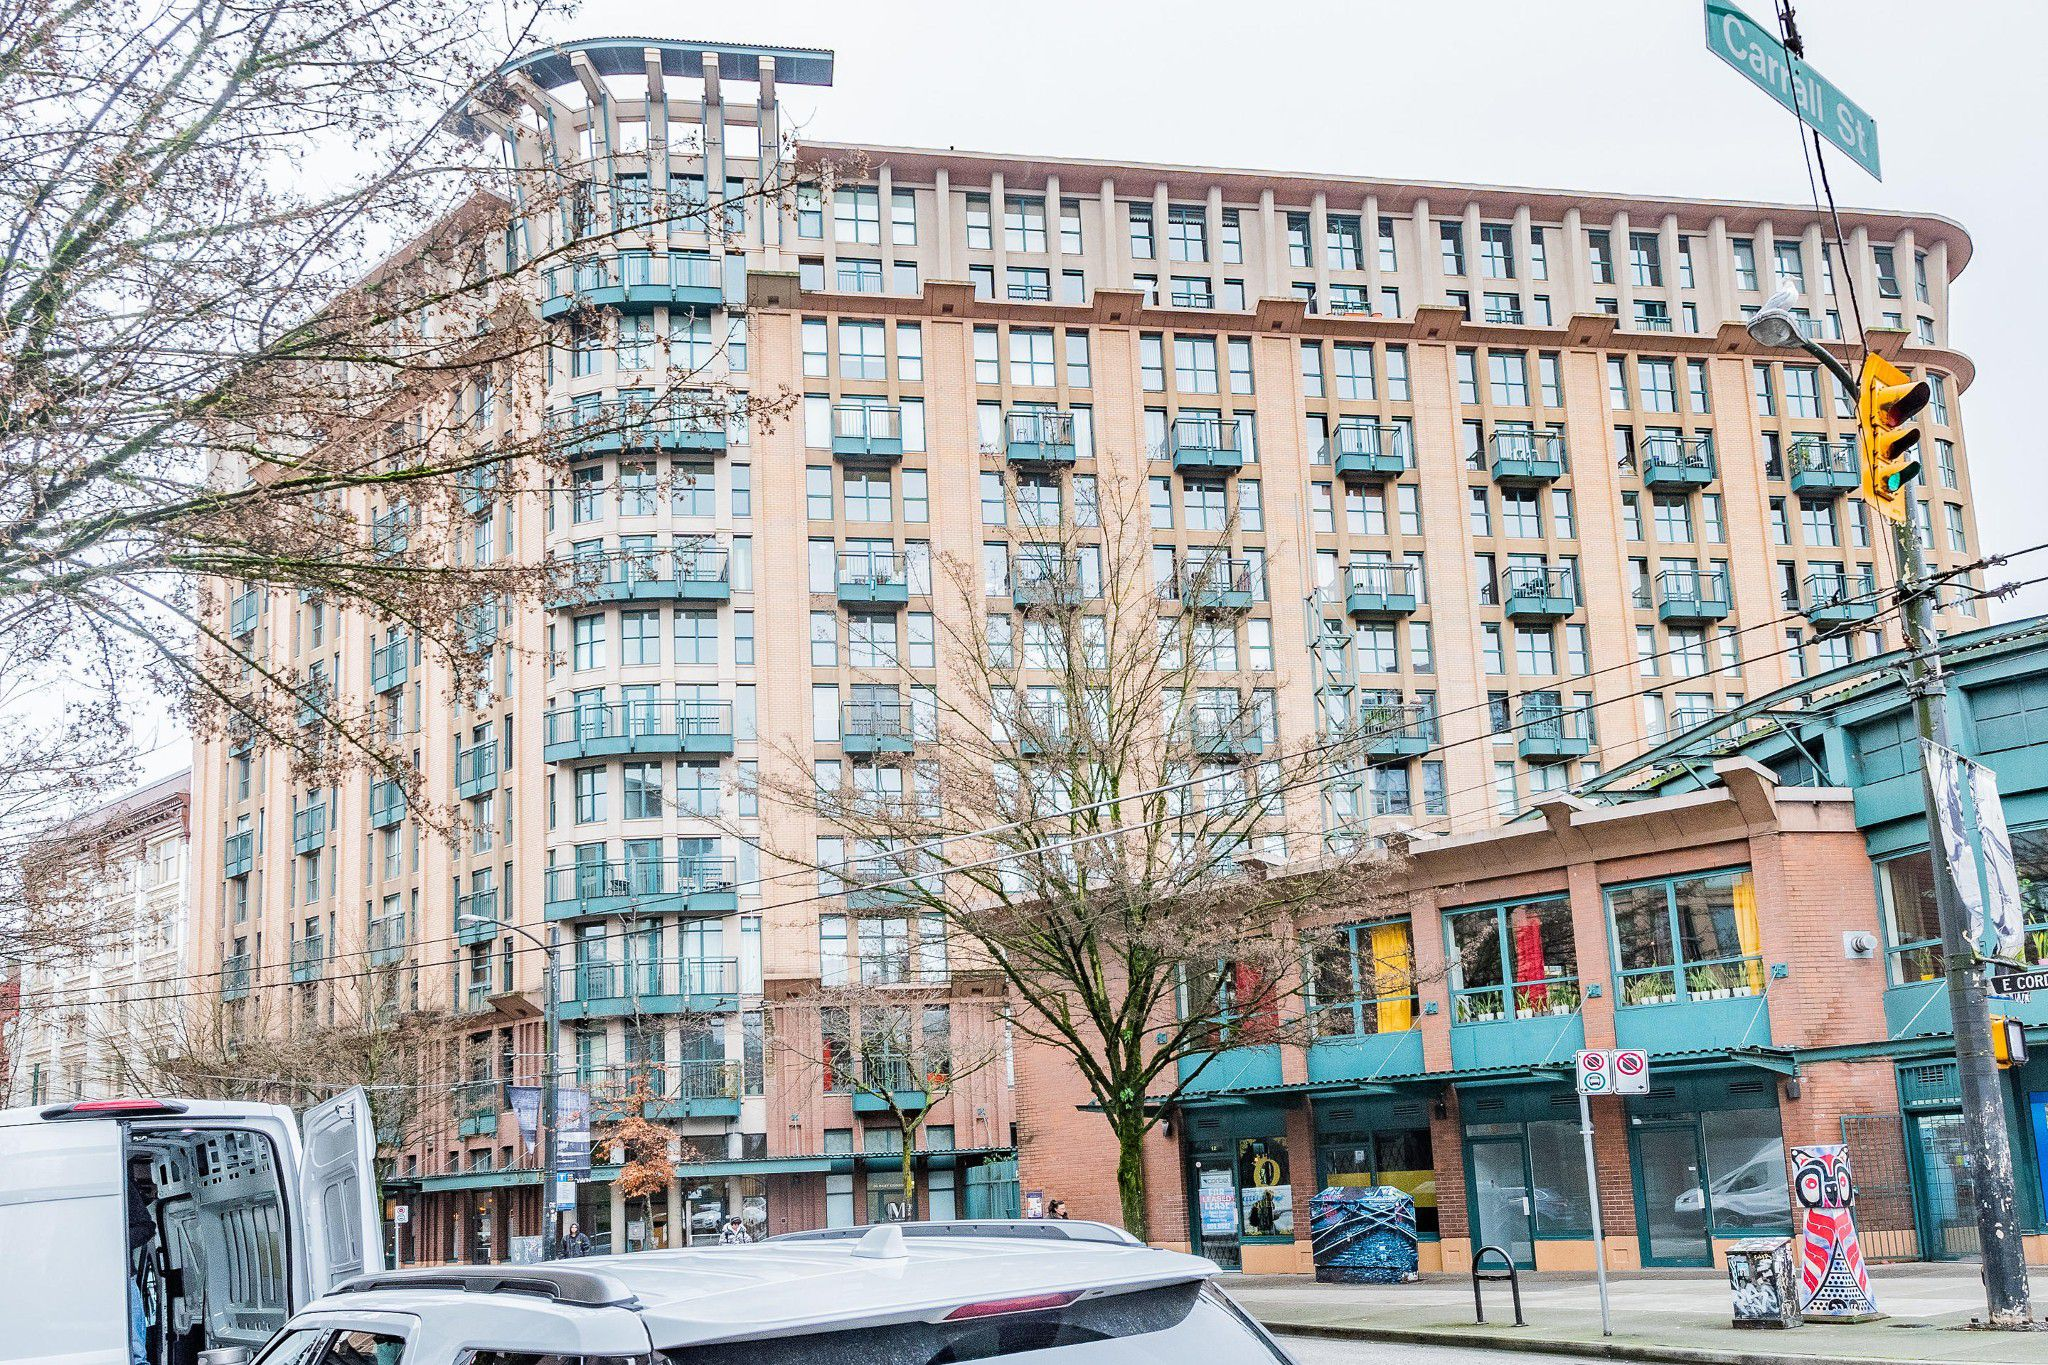 """Main Photo: 619 22 E CORDOVA Street in Vancouver: Downtown VE Condo for sale in """"Van Horne"""" (Vancouver East)  : MLS®# R2334498"""